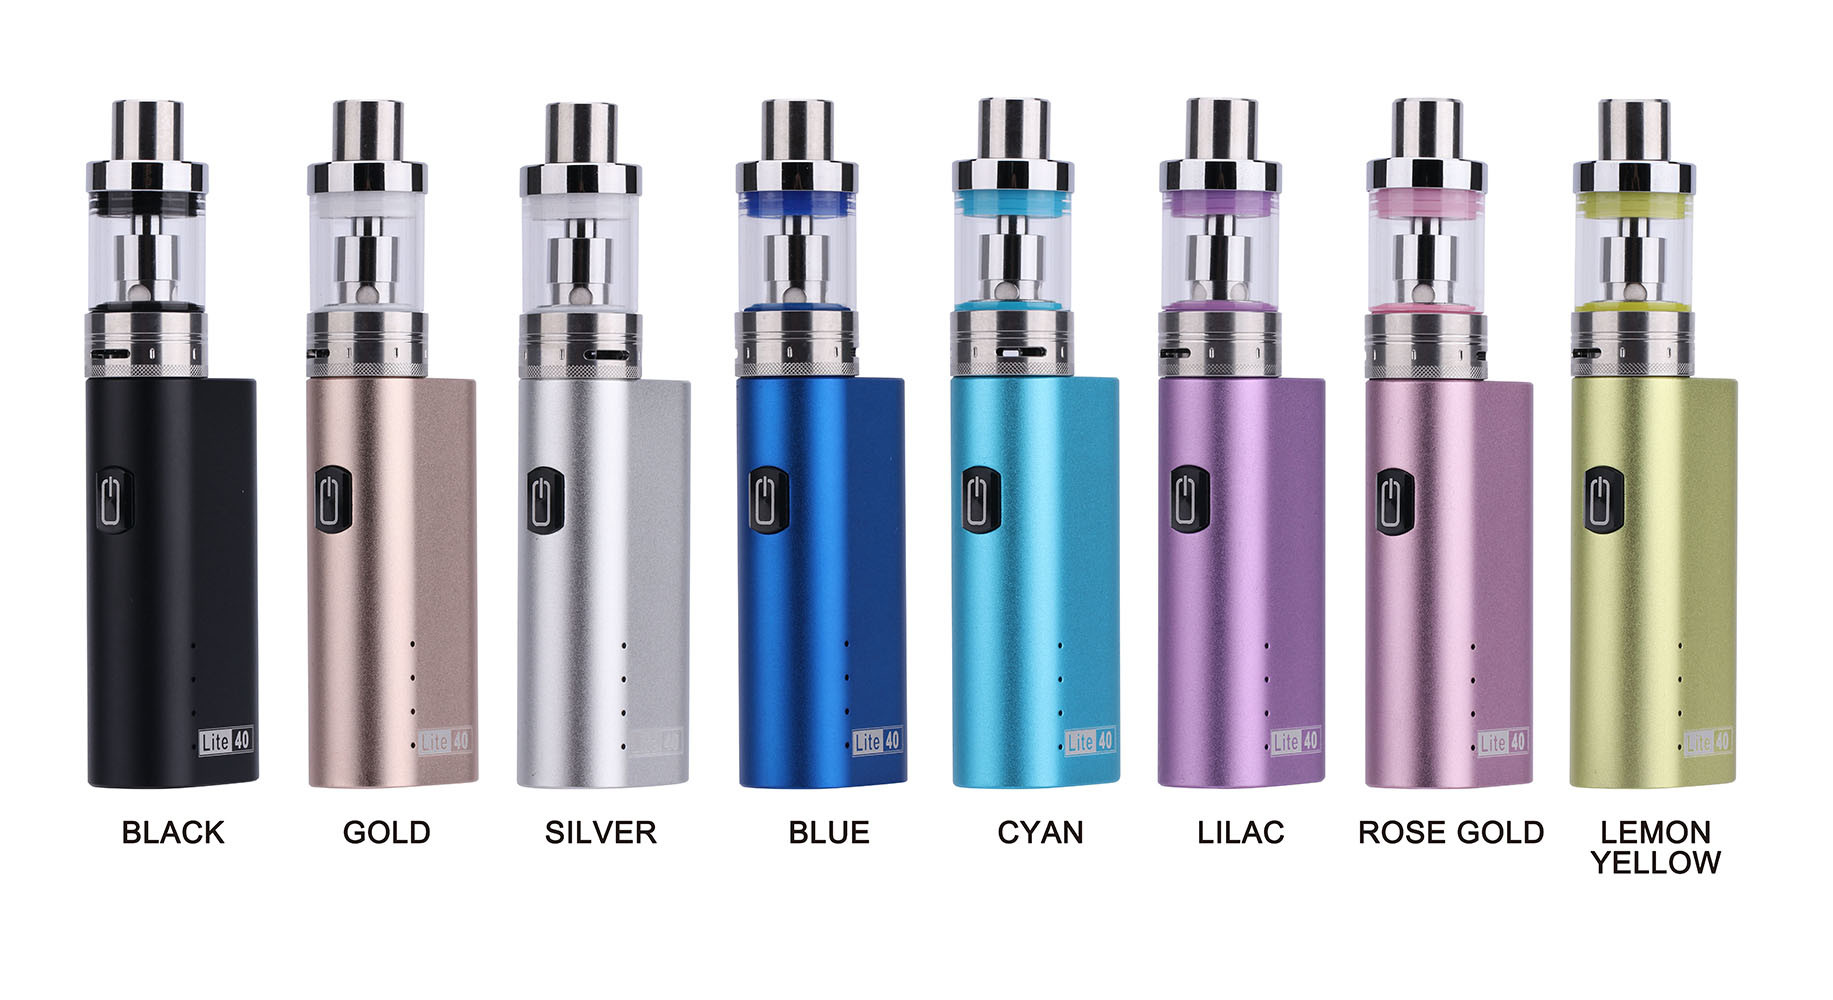 Vaporizer China Suppliers Hot Item 2017 Alibaba Express Rainbow Smoke Electronics Box Mod Jomotech Lite 40 Vape Pen China Supplier